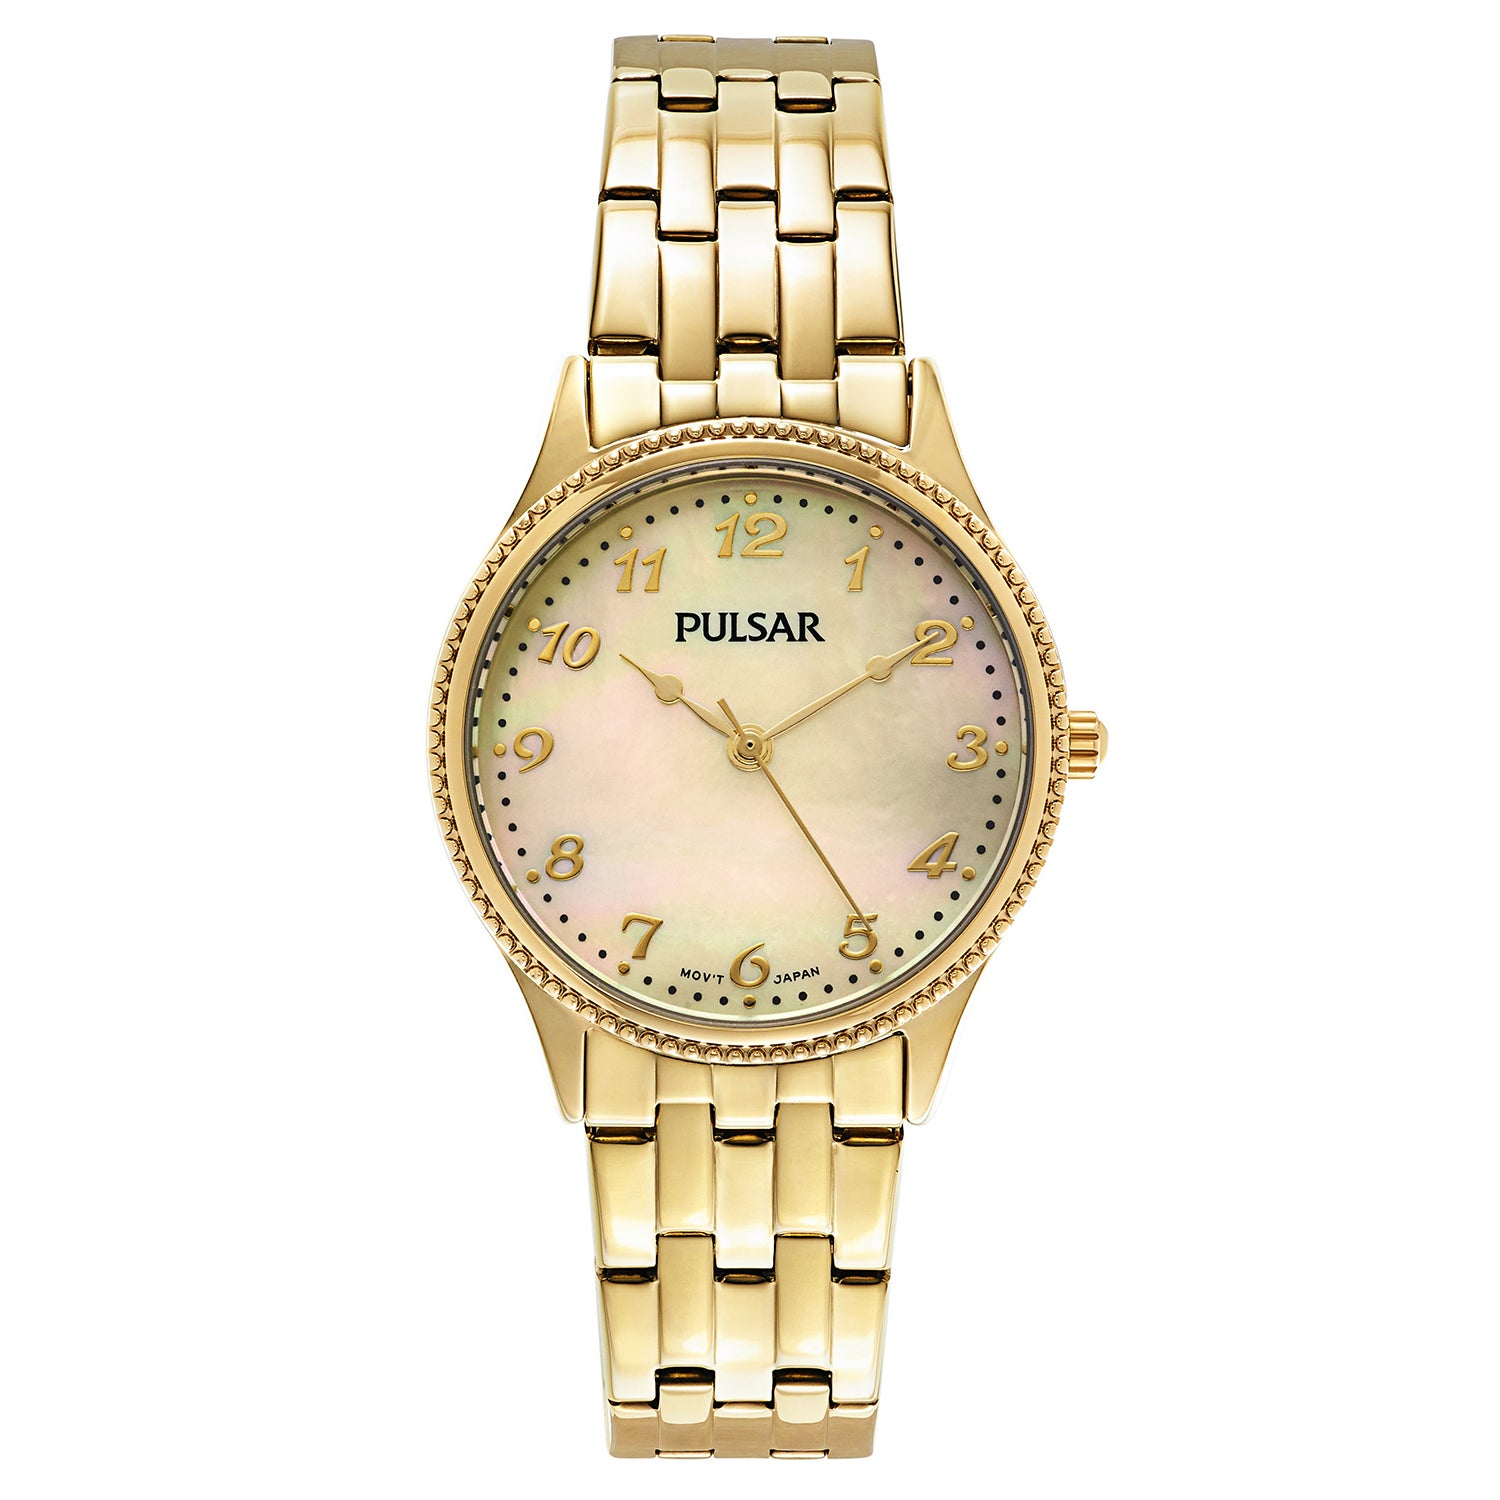 PULSAR Yellow Gold-plated Stainless Steel Japanese Quartz...